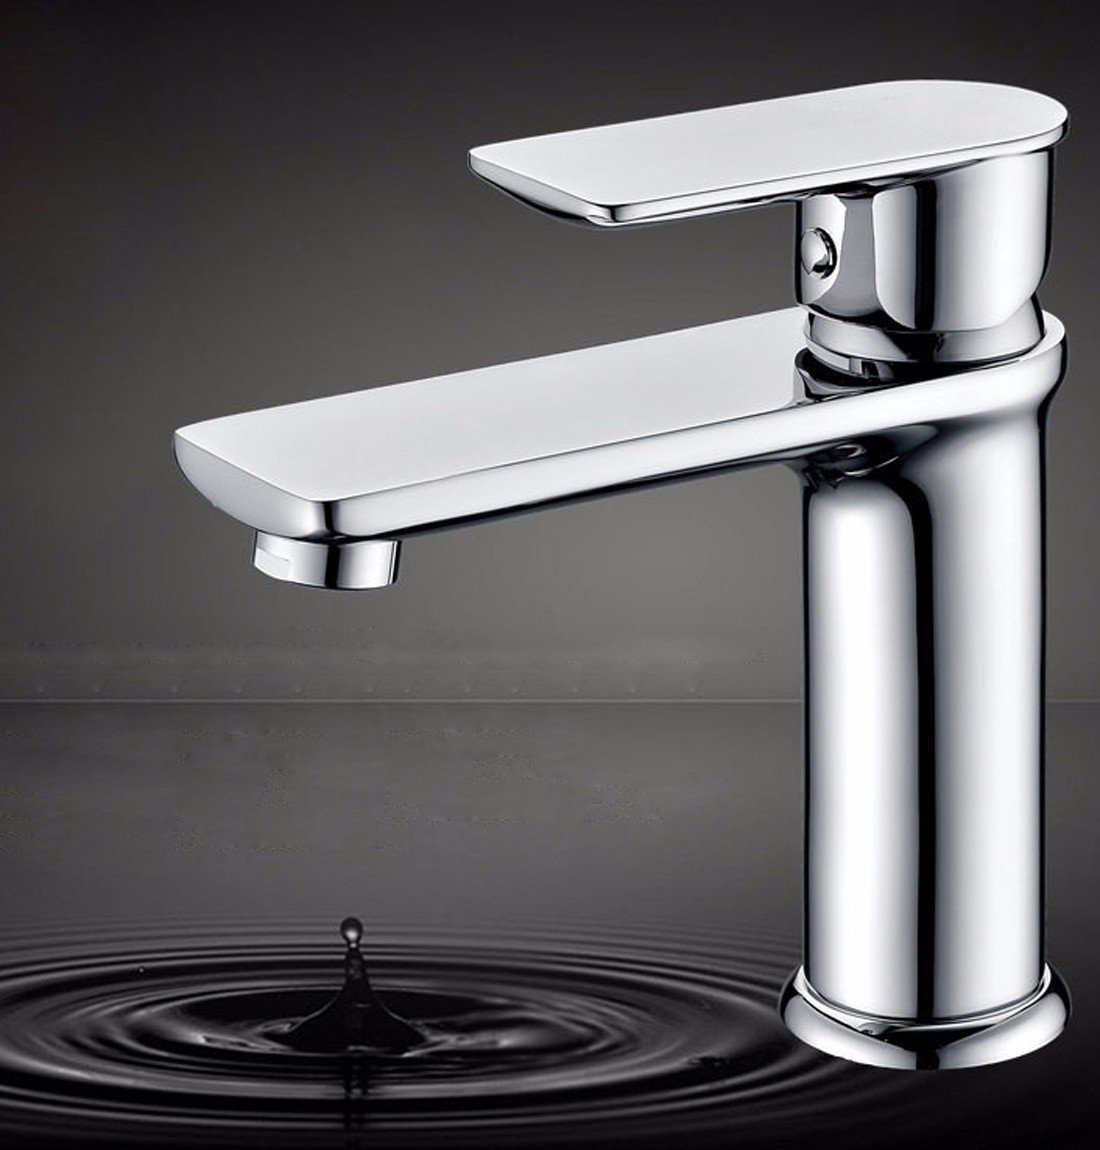 MDRW-All copper single hole basin faucet